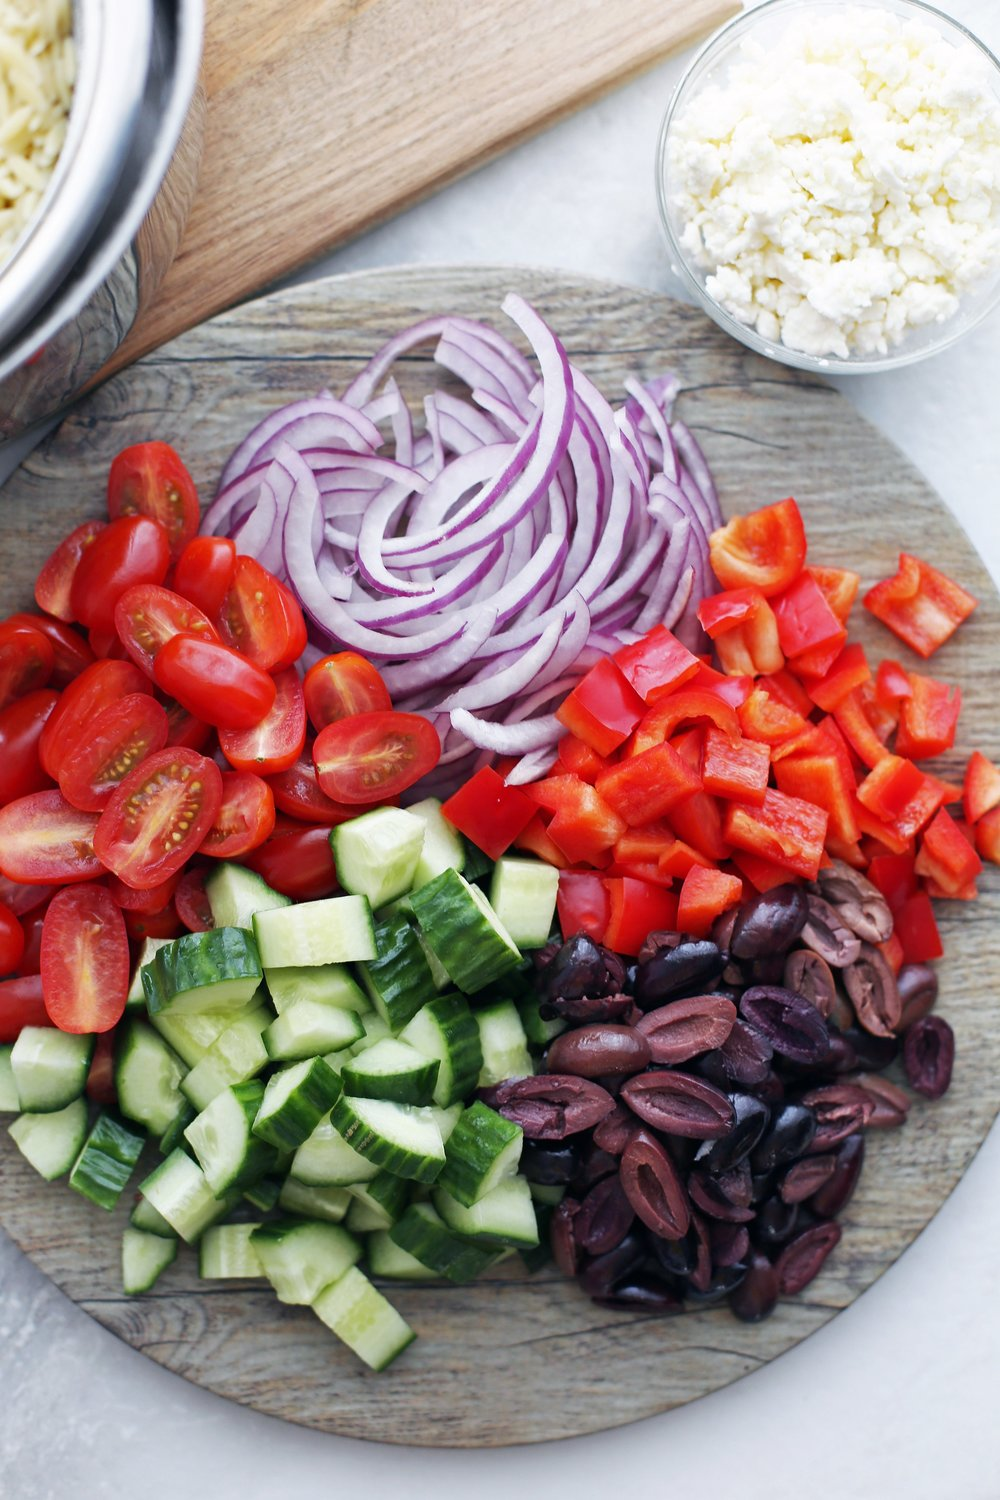 A large round wooden platter holding chopped cucumbers, grape tomatoes, red bell peppers, black olives, and red onions.